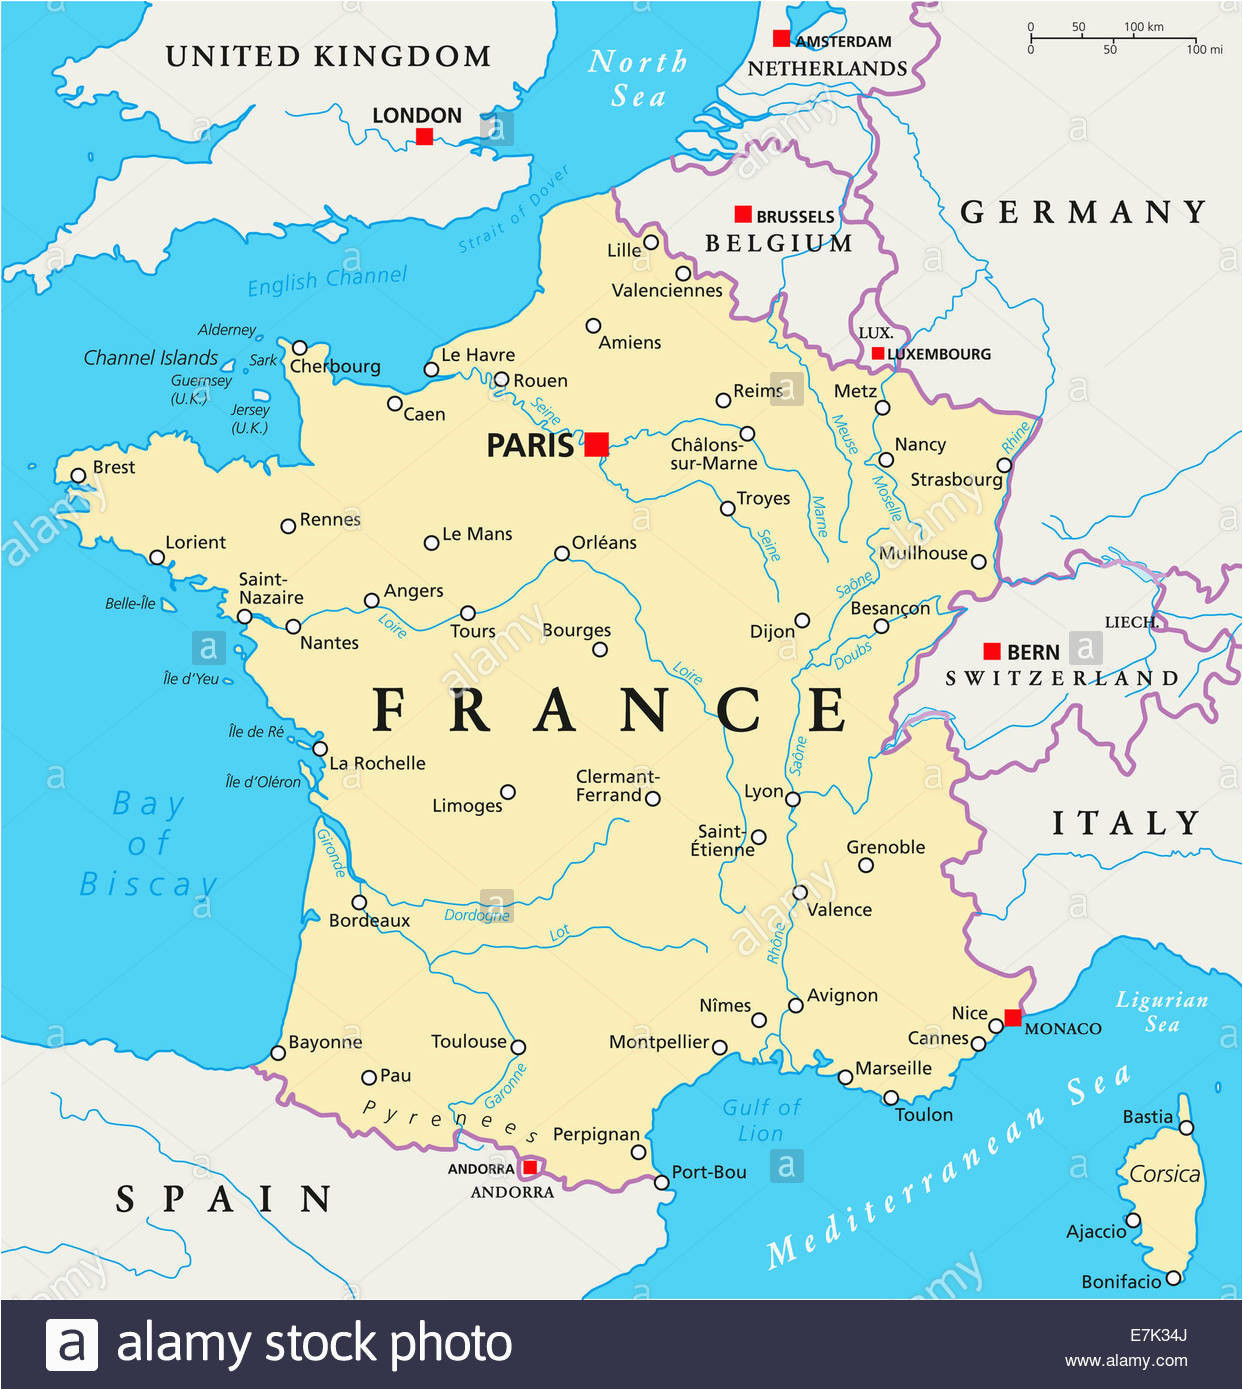 english channel map stock photos english channel map stock